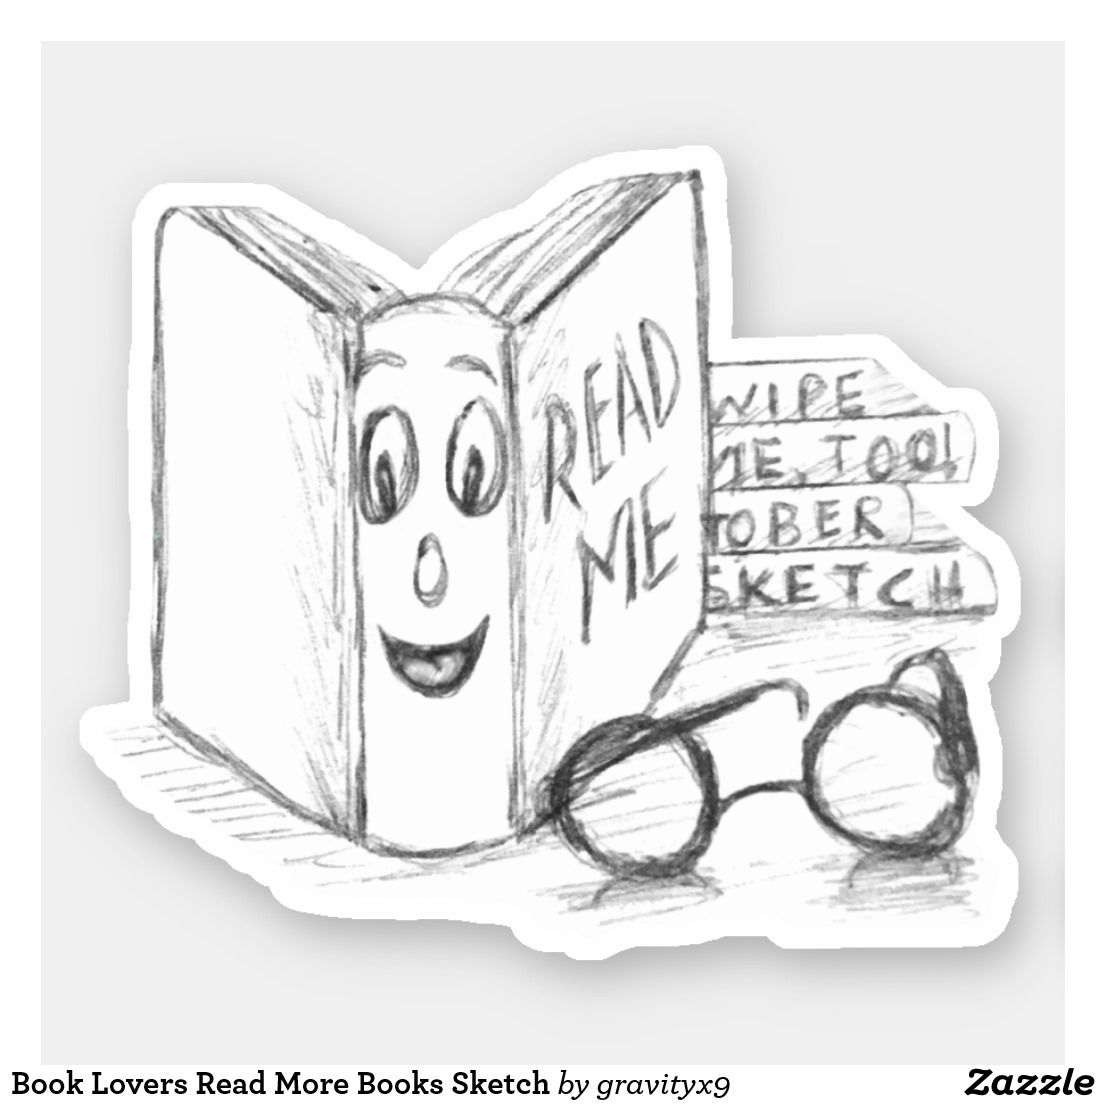 Book Lovers Read More Books Sketch Sticker |  * Book Lovers Read More Books Sketch Sticker  by at * Cutout stickers are available in several size options.* Choose size and use for DIY projects, projects and scrap booking ideas, too! * contour stickers * stickers laptop ideas * cut out stickers * stickers for school * stickers for crafting * stickers for kids *